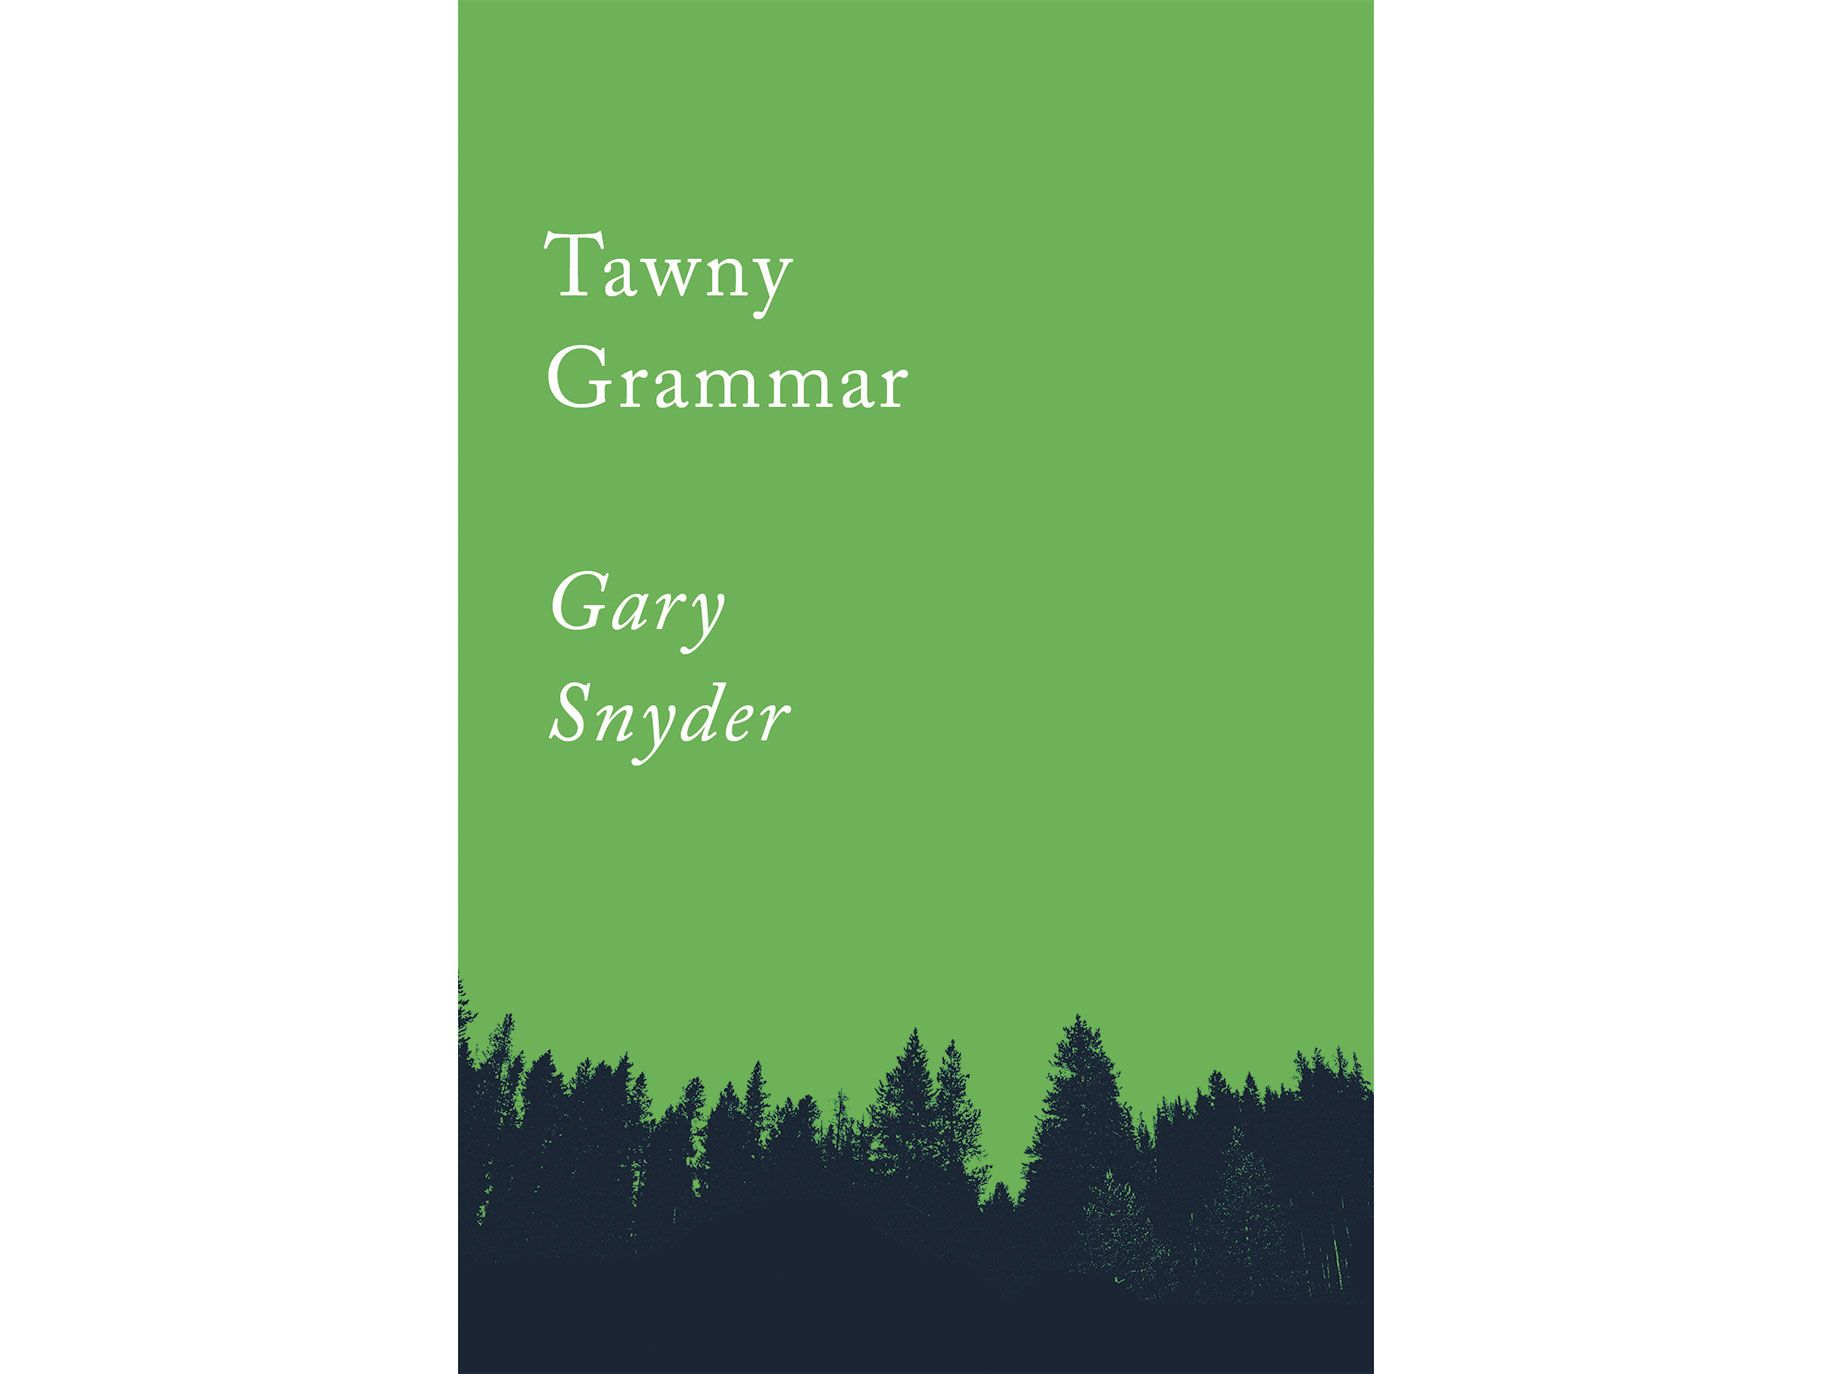 Tawny Grammar by Gary Snyder, Counterpoint Press, 80 pages, $10